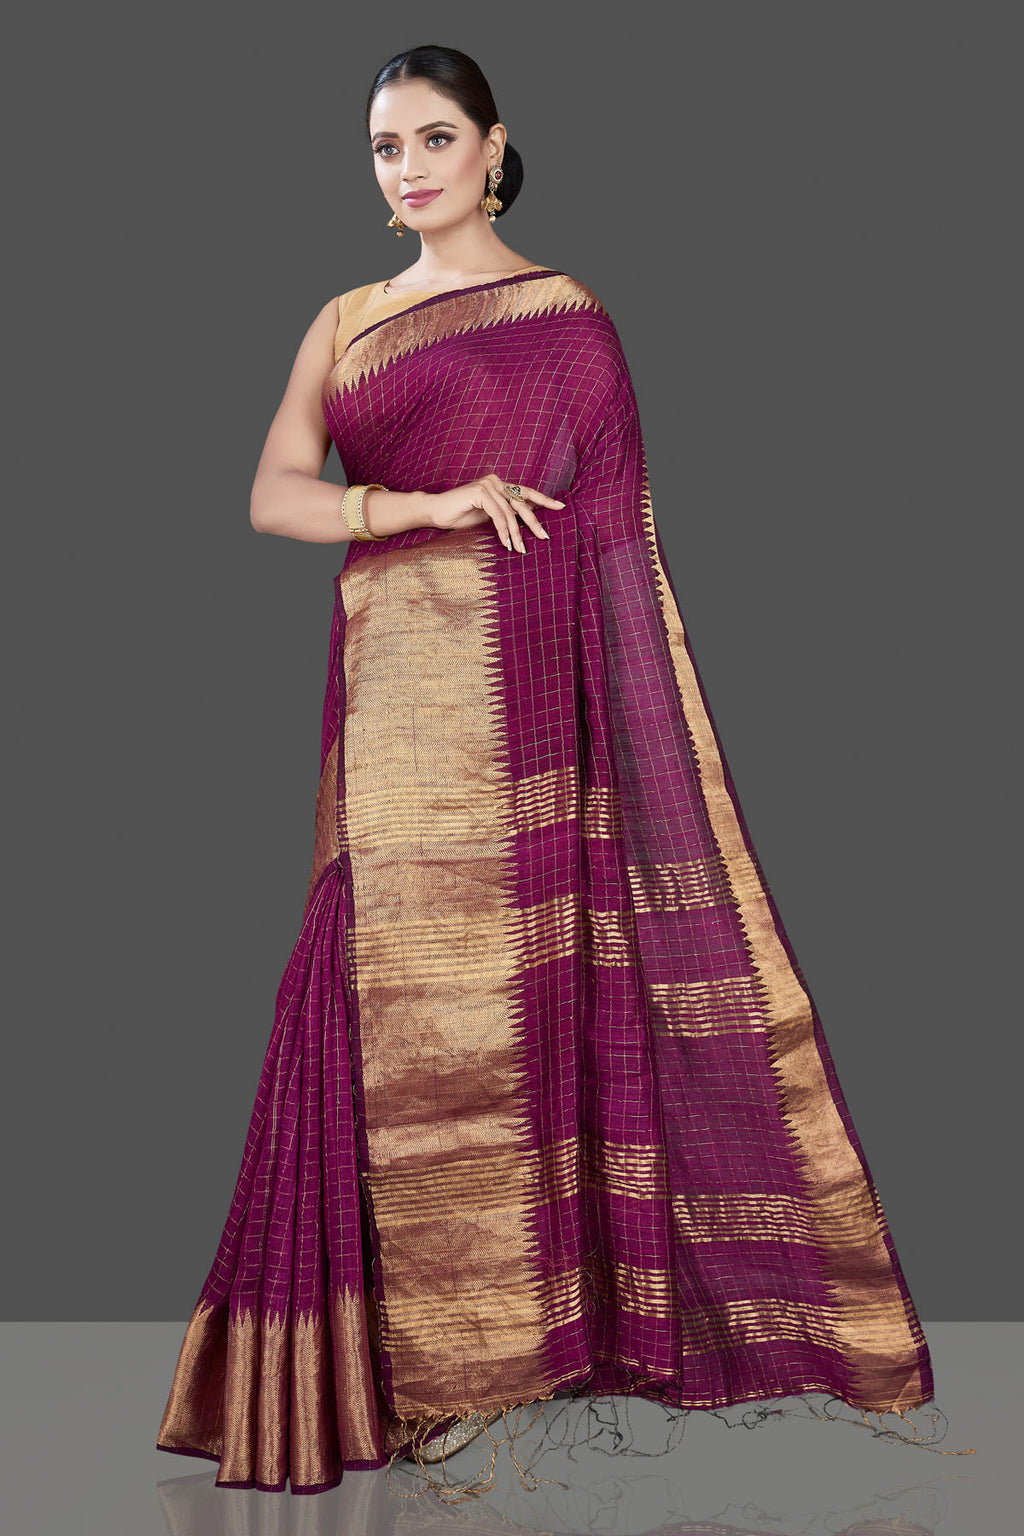 Shop beautiful plum check matka silk saree online in USA with golden zari border. Be the talk of the occasion in exquisite designer sarees, pure silk sarees, tussar saris, embroidered sarees, handloom sarees from Pure Elegance Indian fashion store in USA.-full view